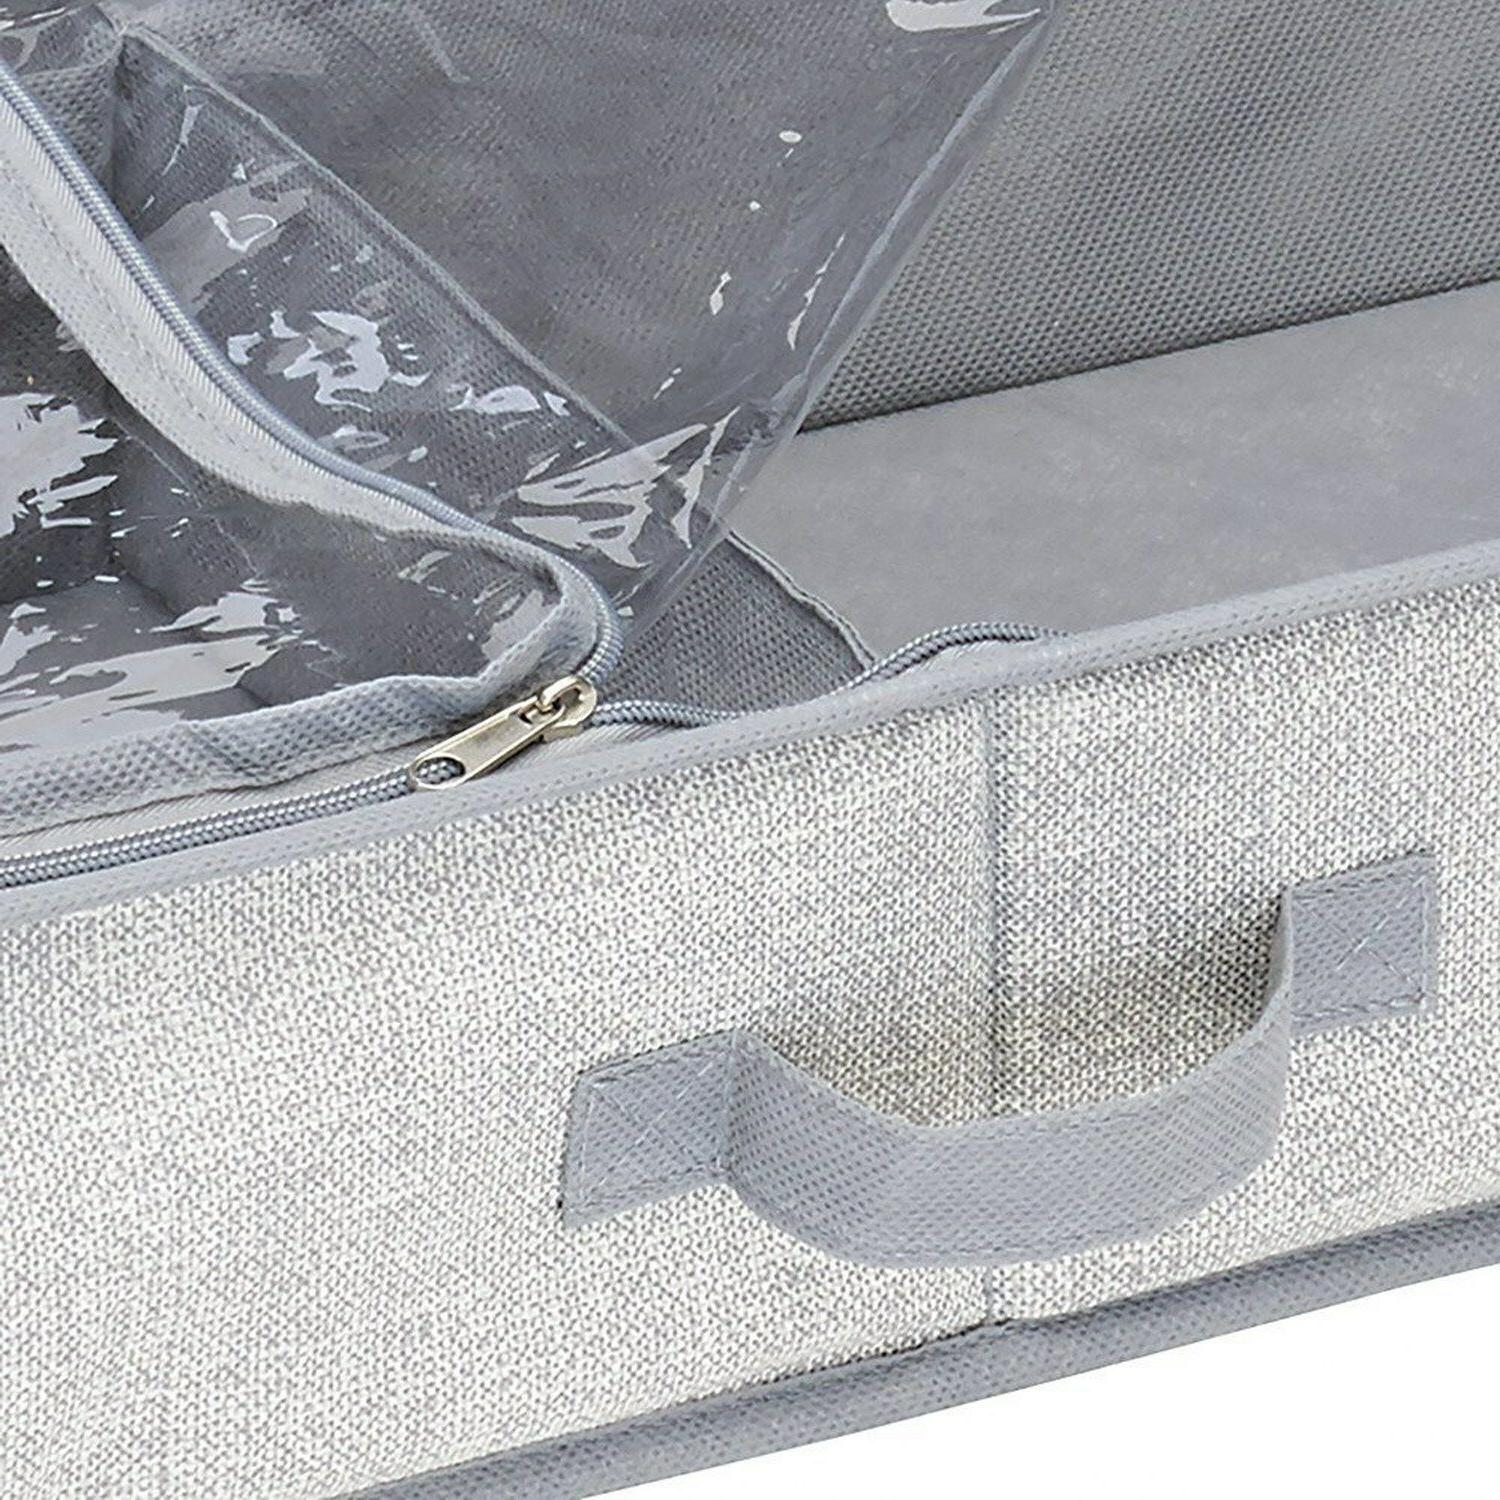 InterDesign 4 Compartment Under Bed Box Polypropylene Imported